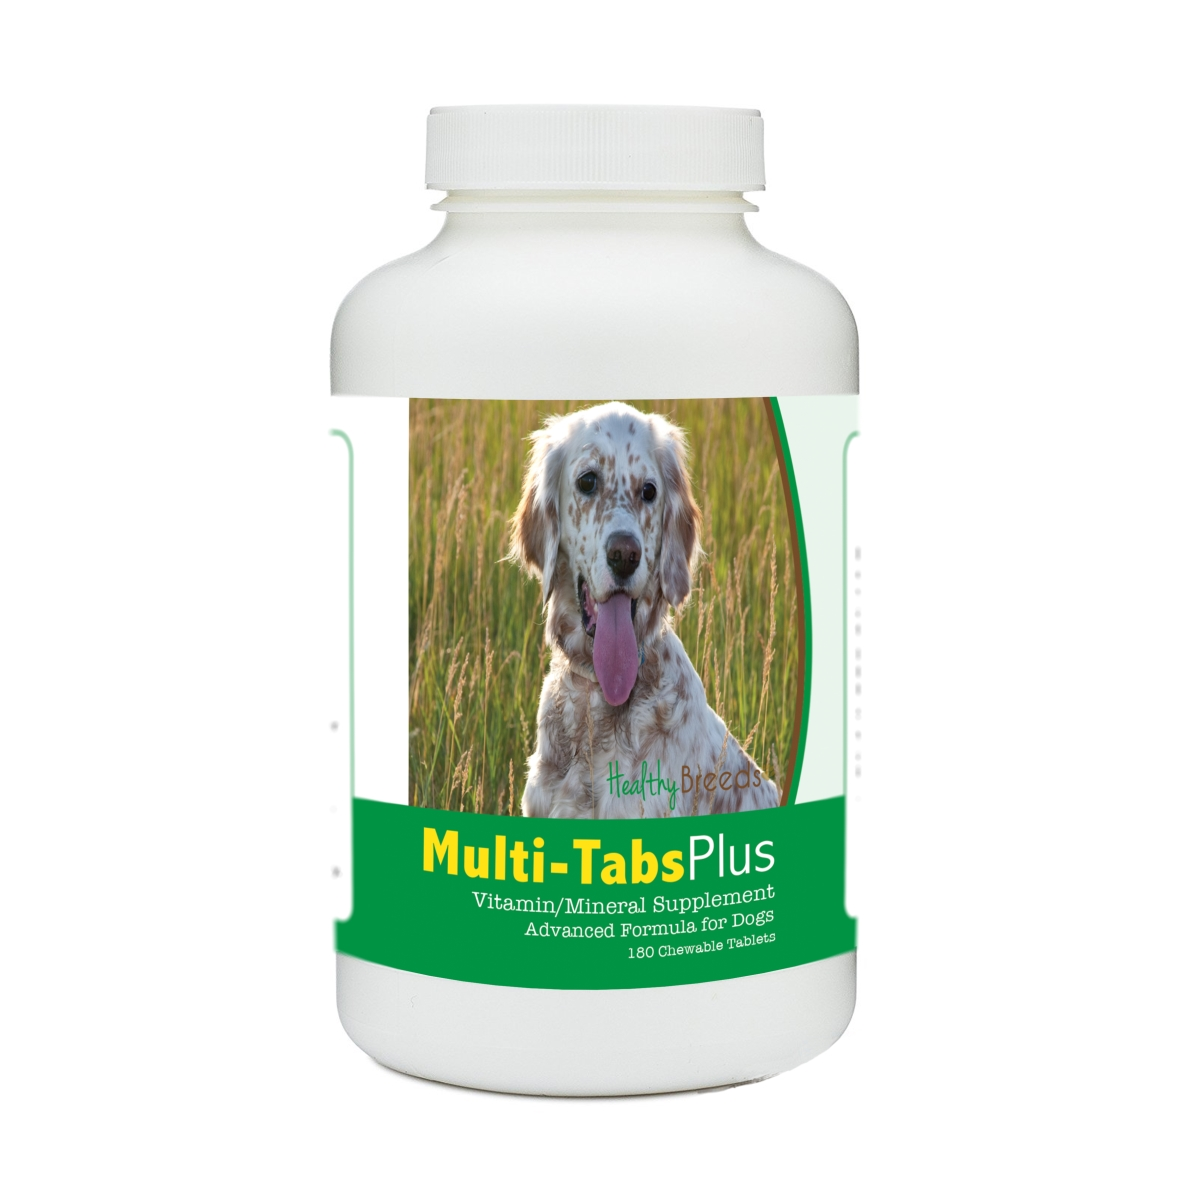 Healthy Breeds 840235140160 English Setter Multi-Tabs Plus Chewable Tablets - 180 Count